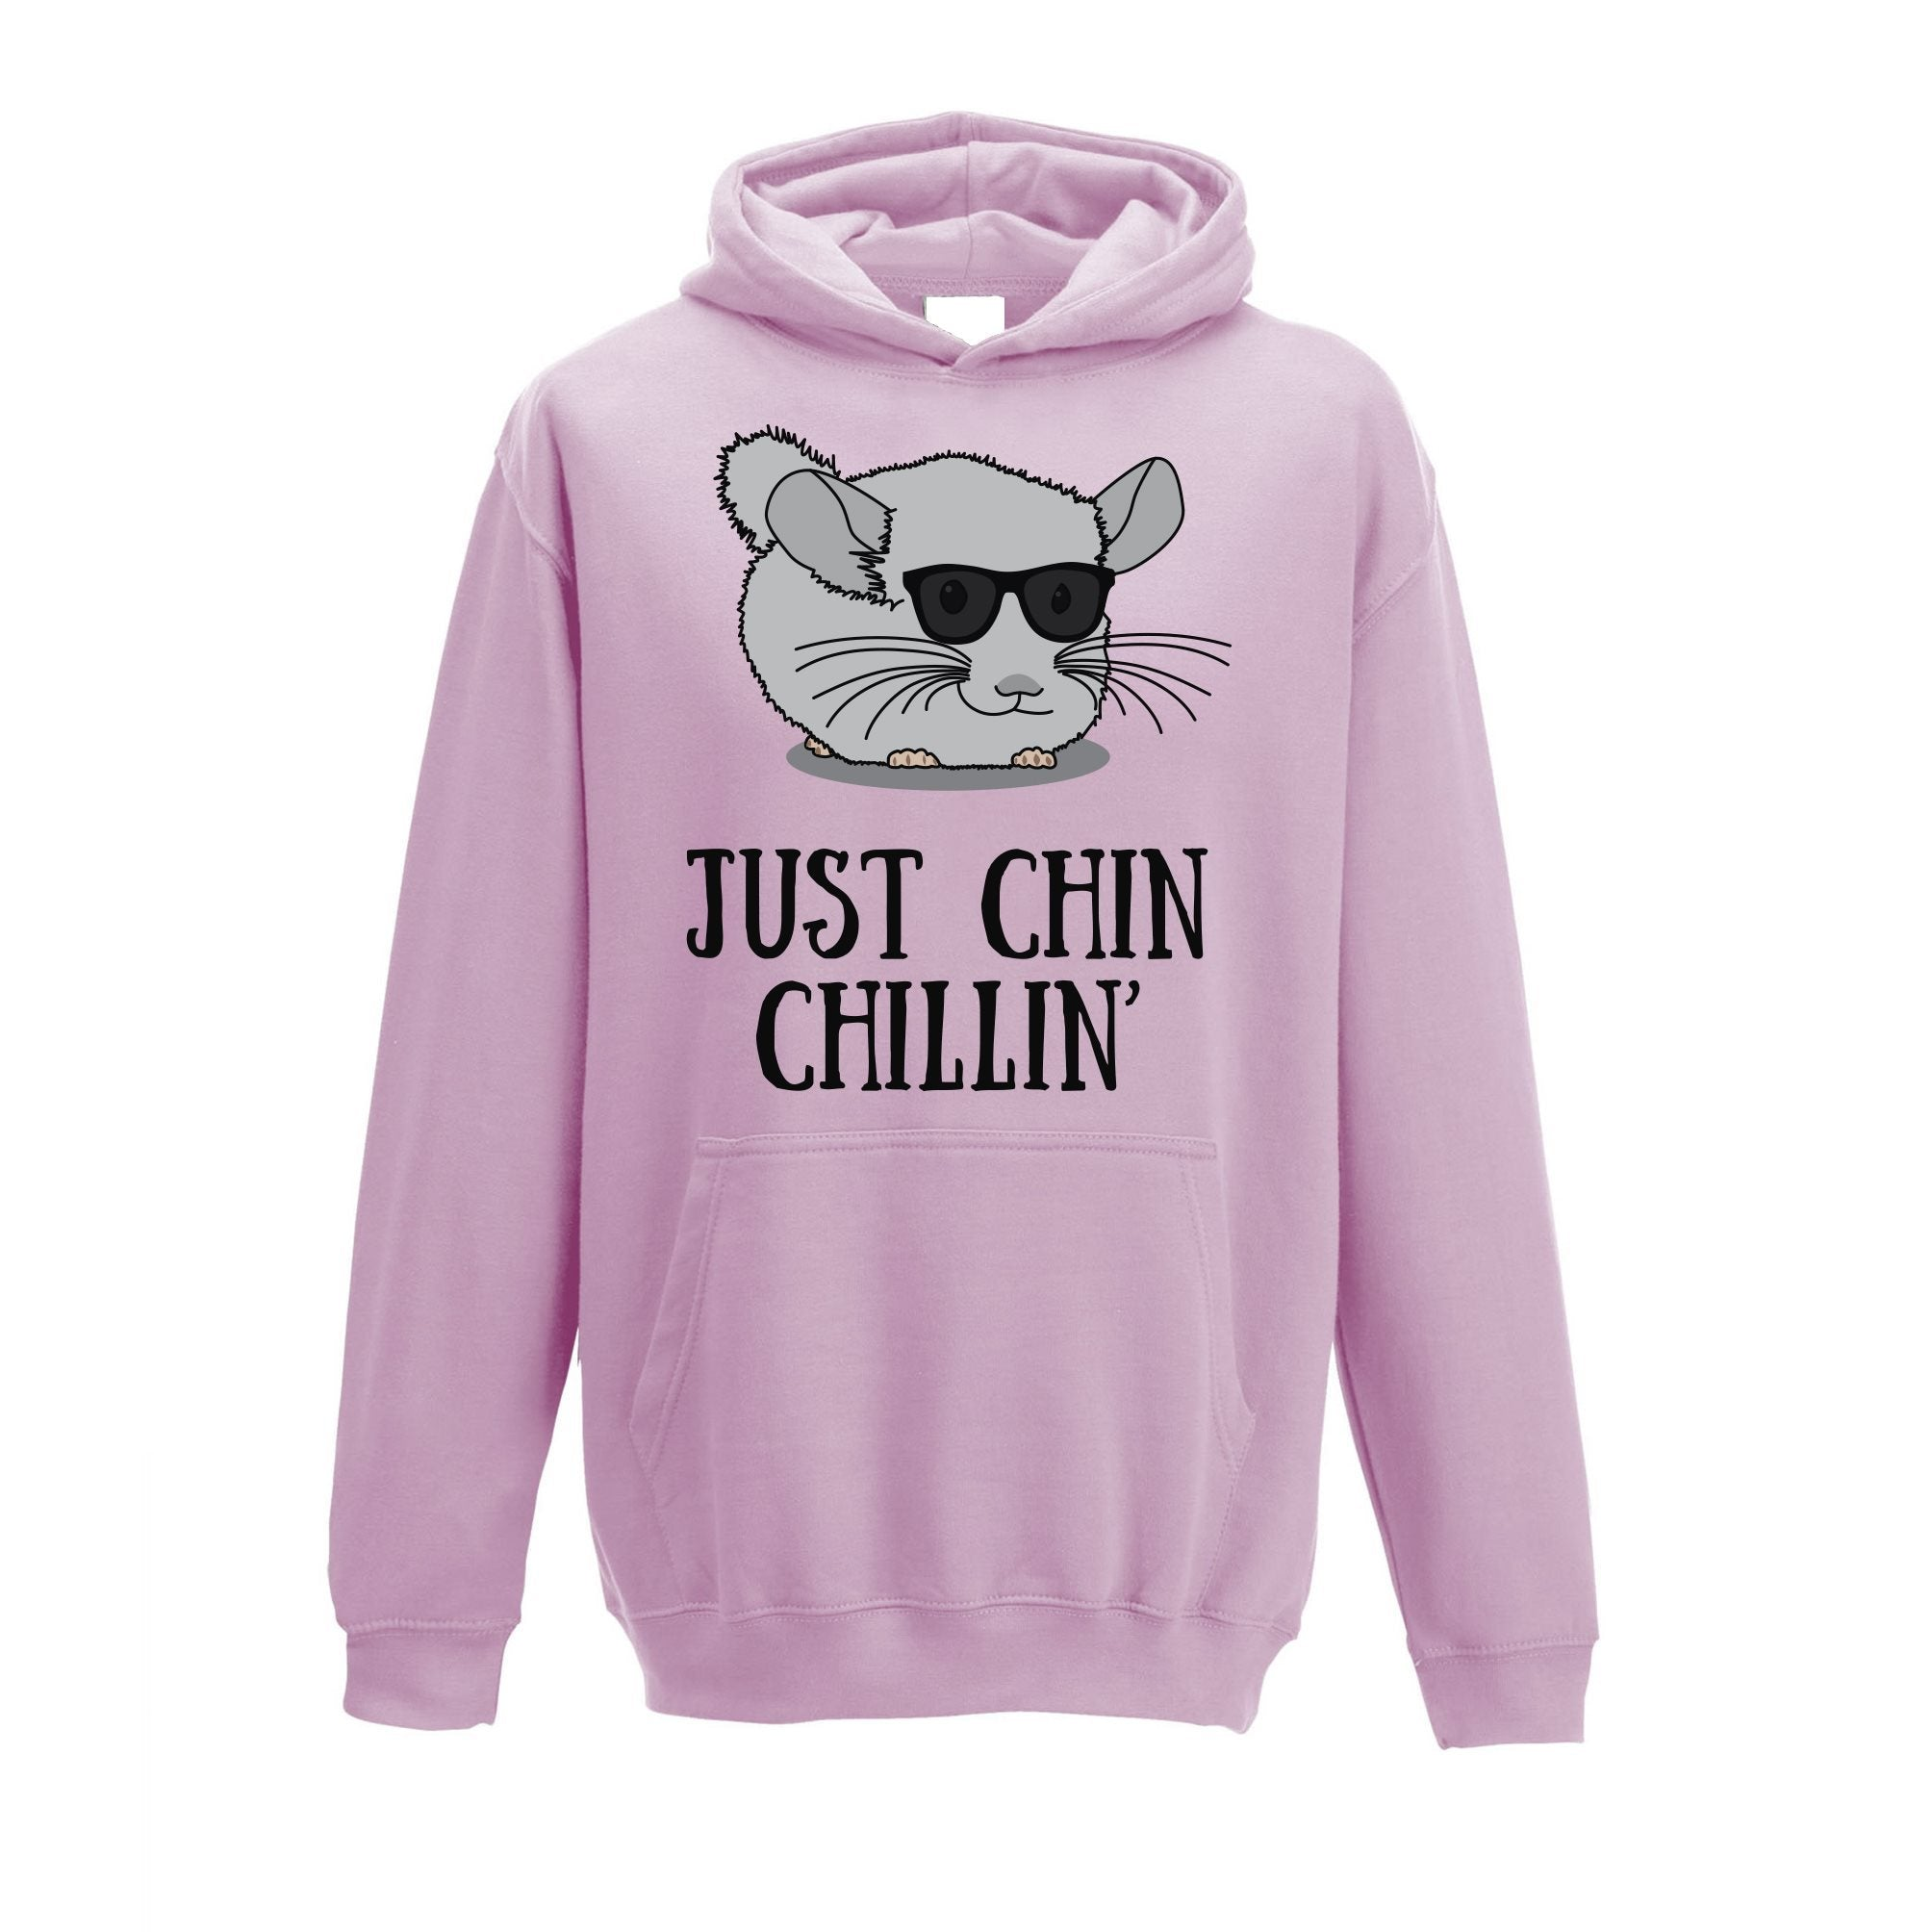 Novelty Kids Hoodie Just Chin Chilling Sunglasses Childs